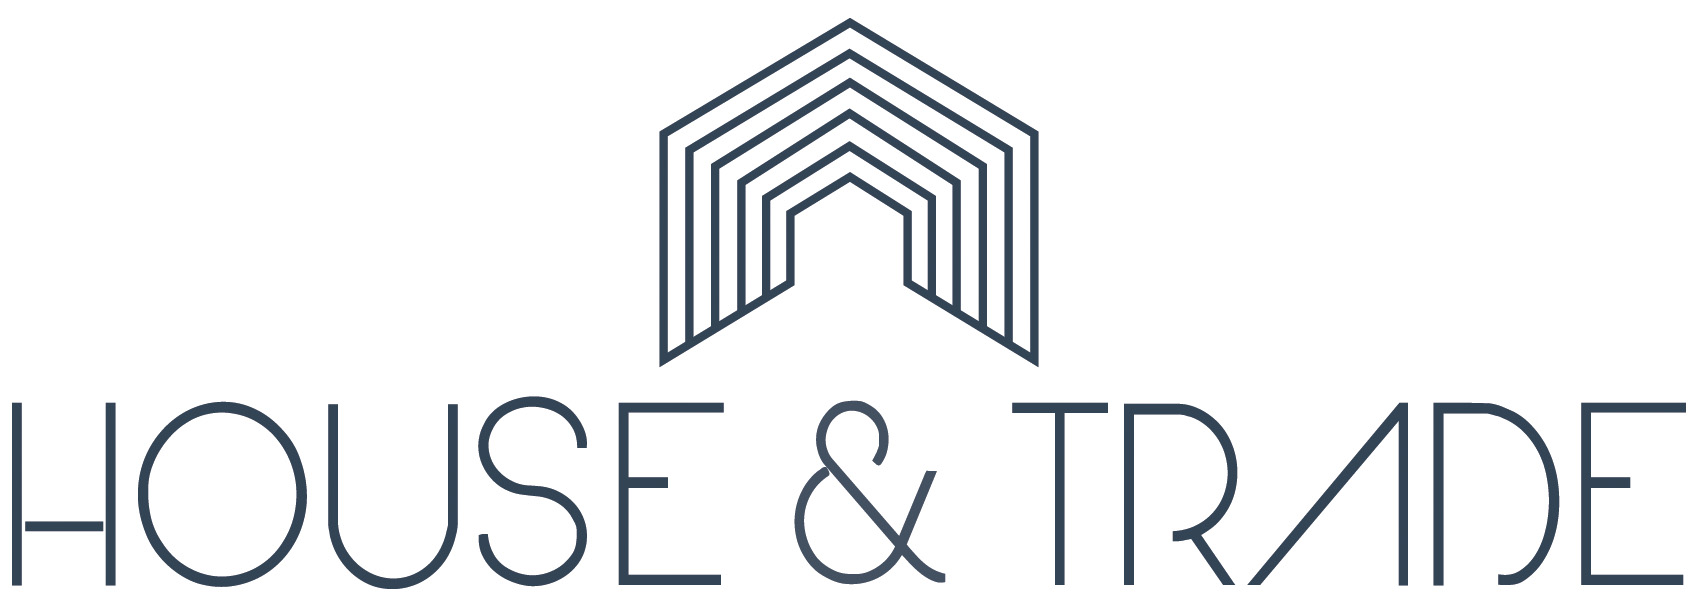 House & Trade | Real Estate and More